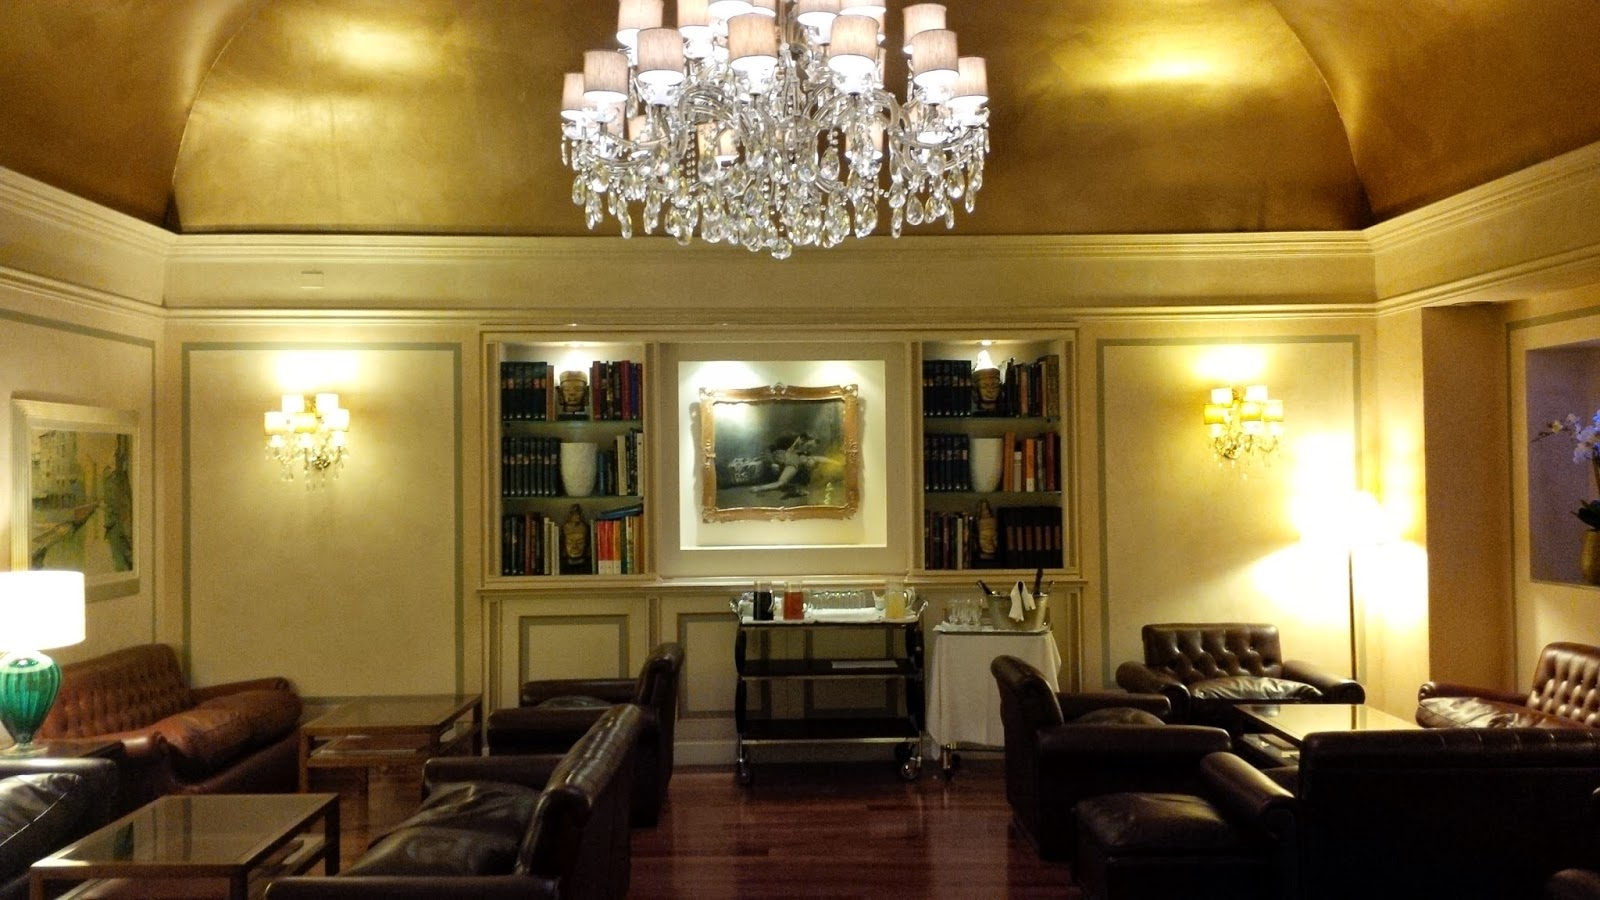 The sumptuous lobby of Hotel Accademia in Verona